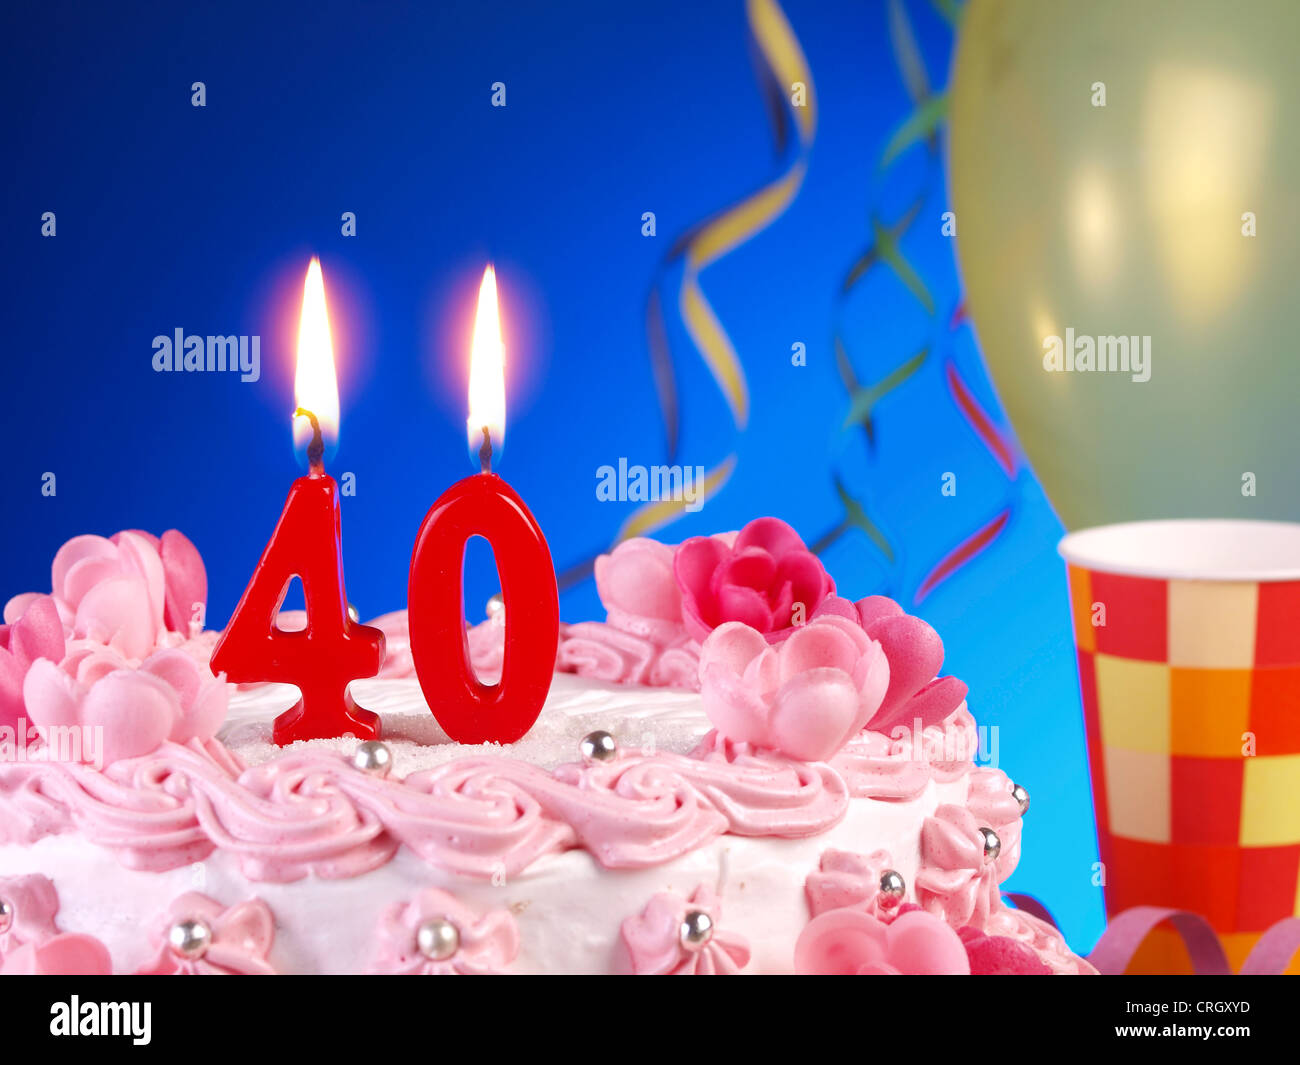 Birthday Anniversary Cake With Candles Showing Nr 40 Stock Photo